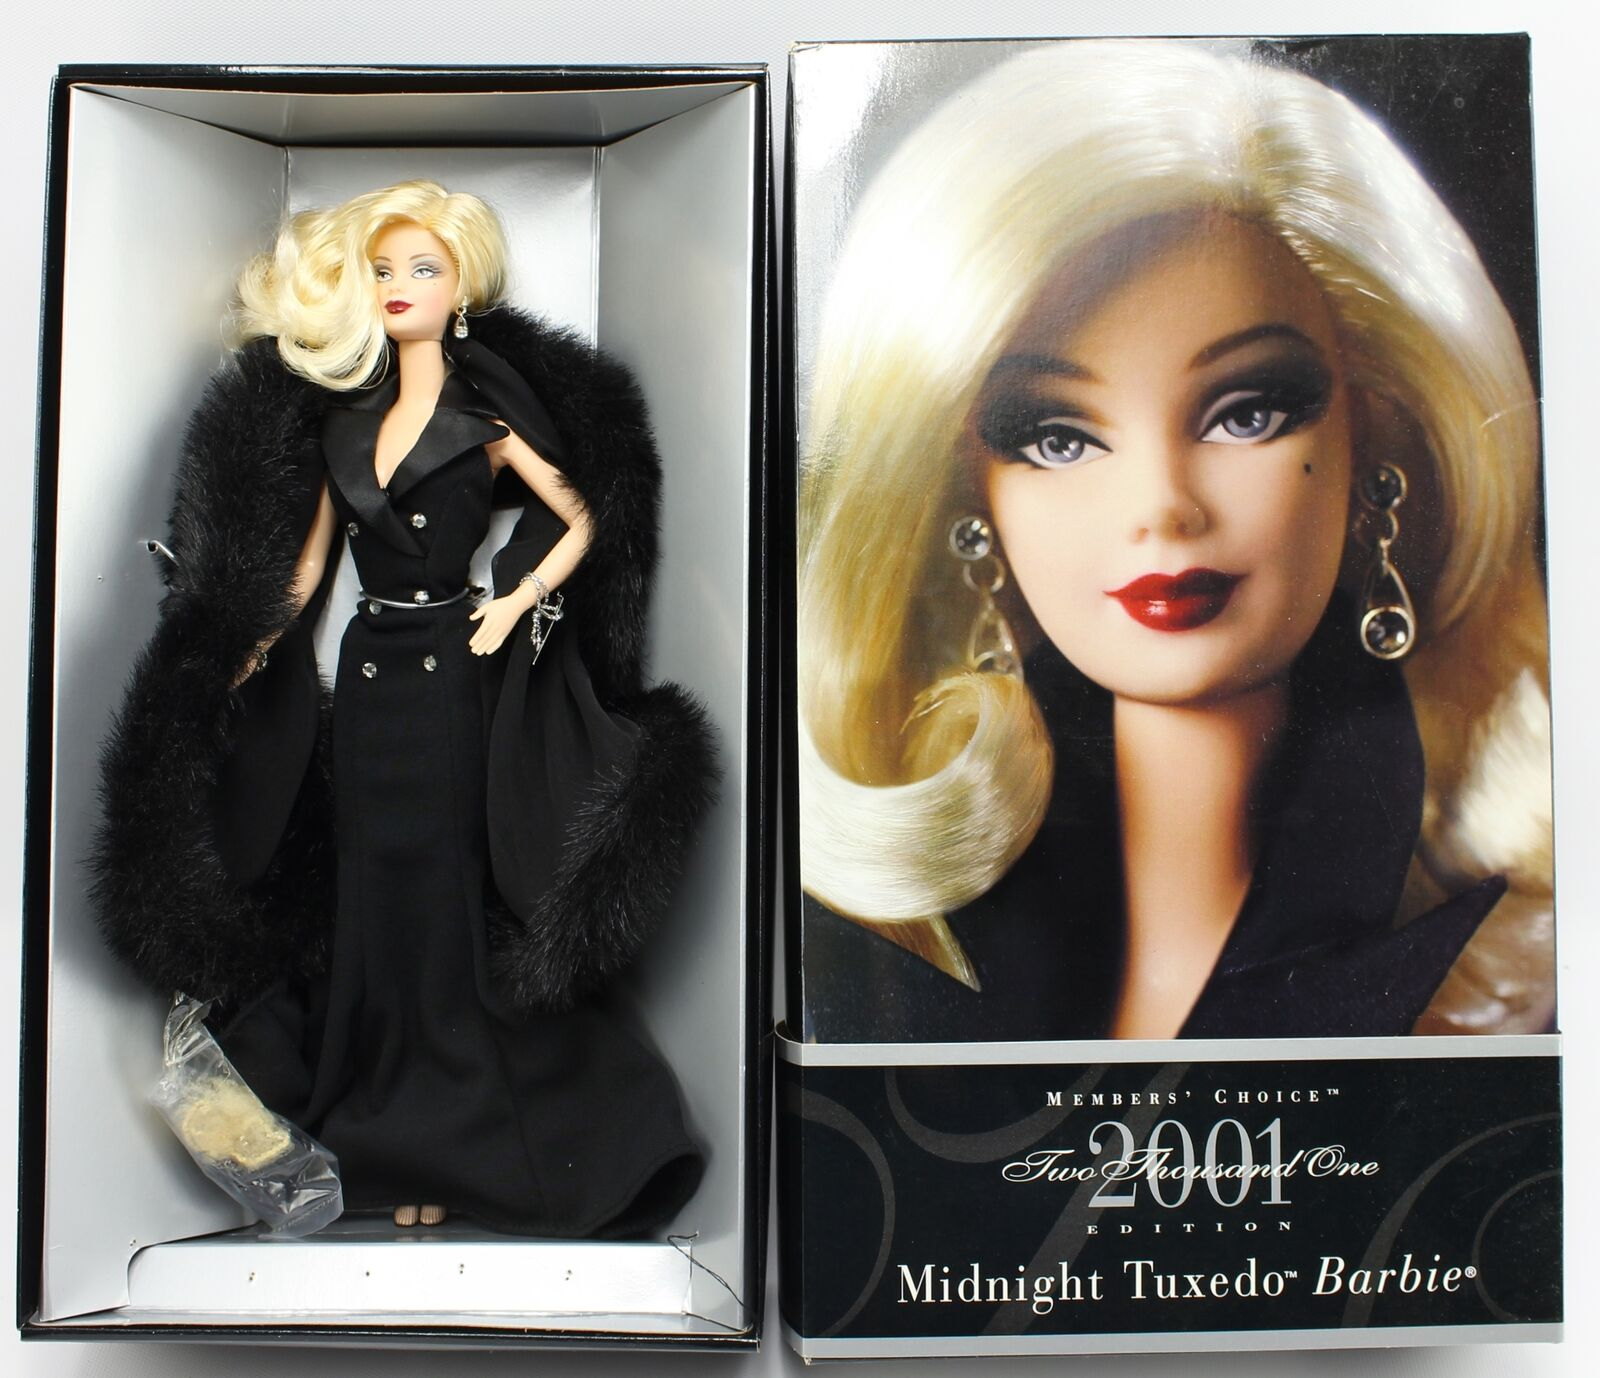 Midnight Tuxedo Barbie 2001 Limited Edition